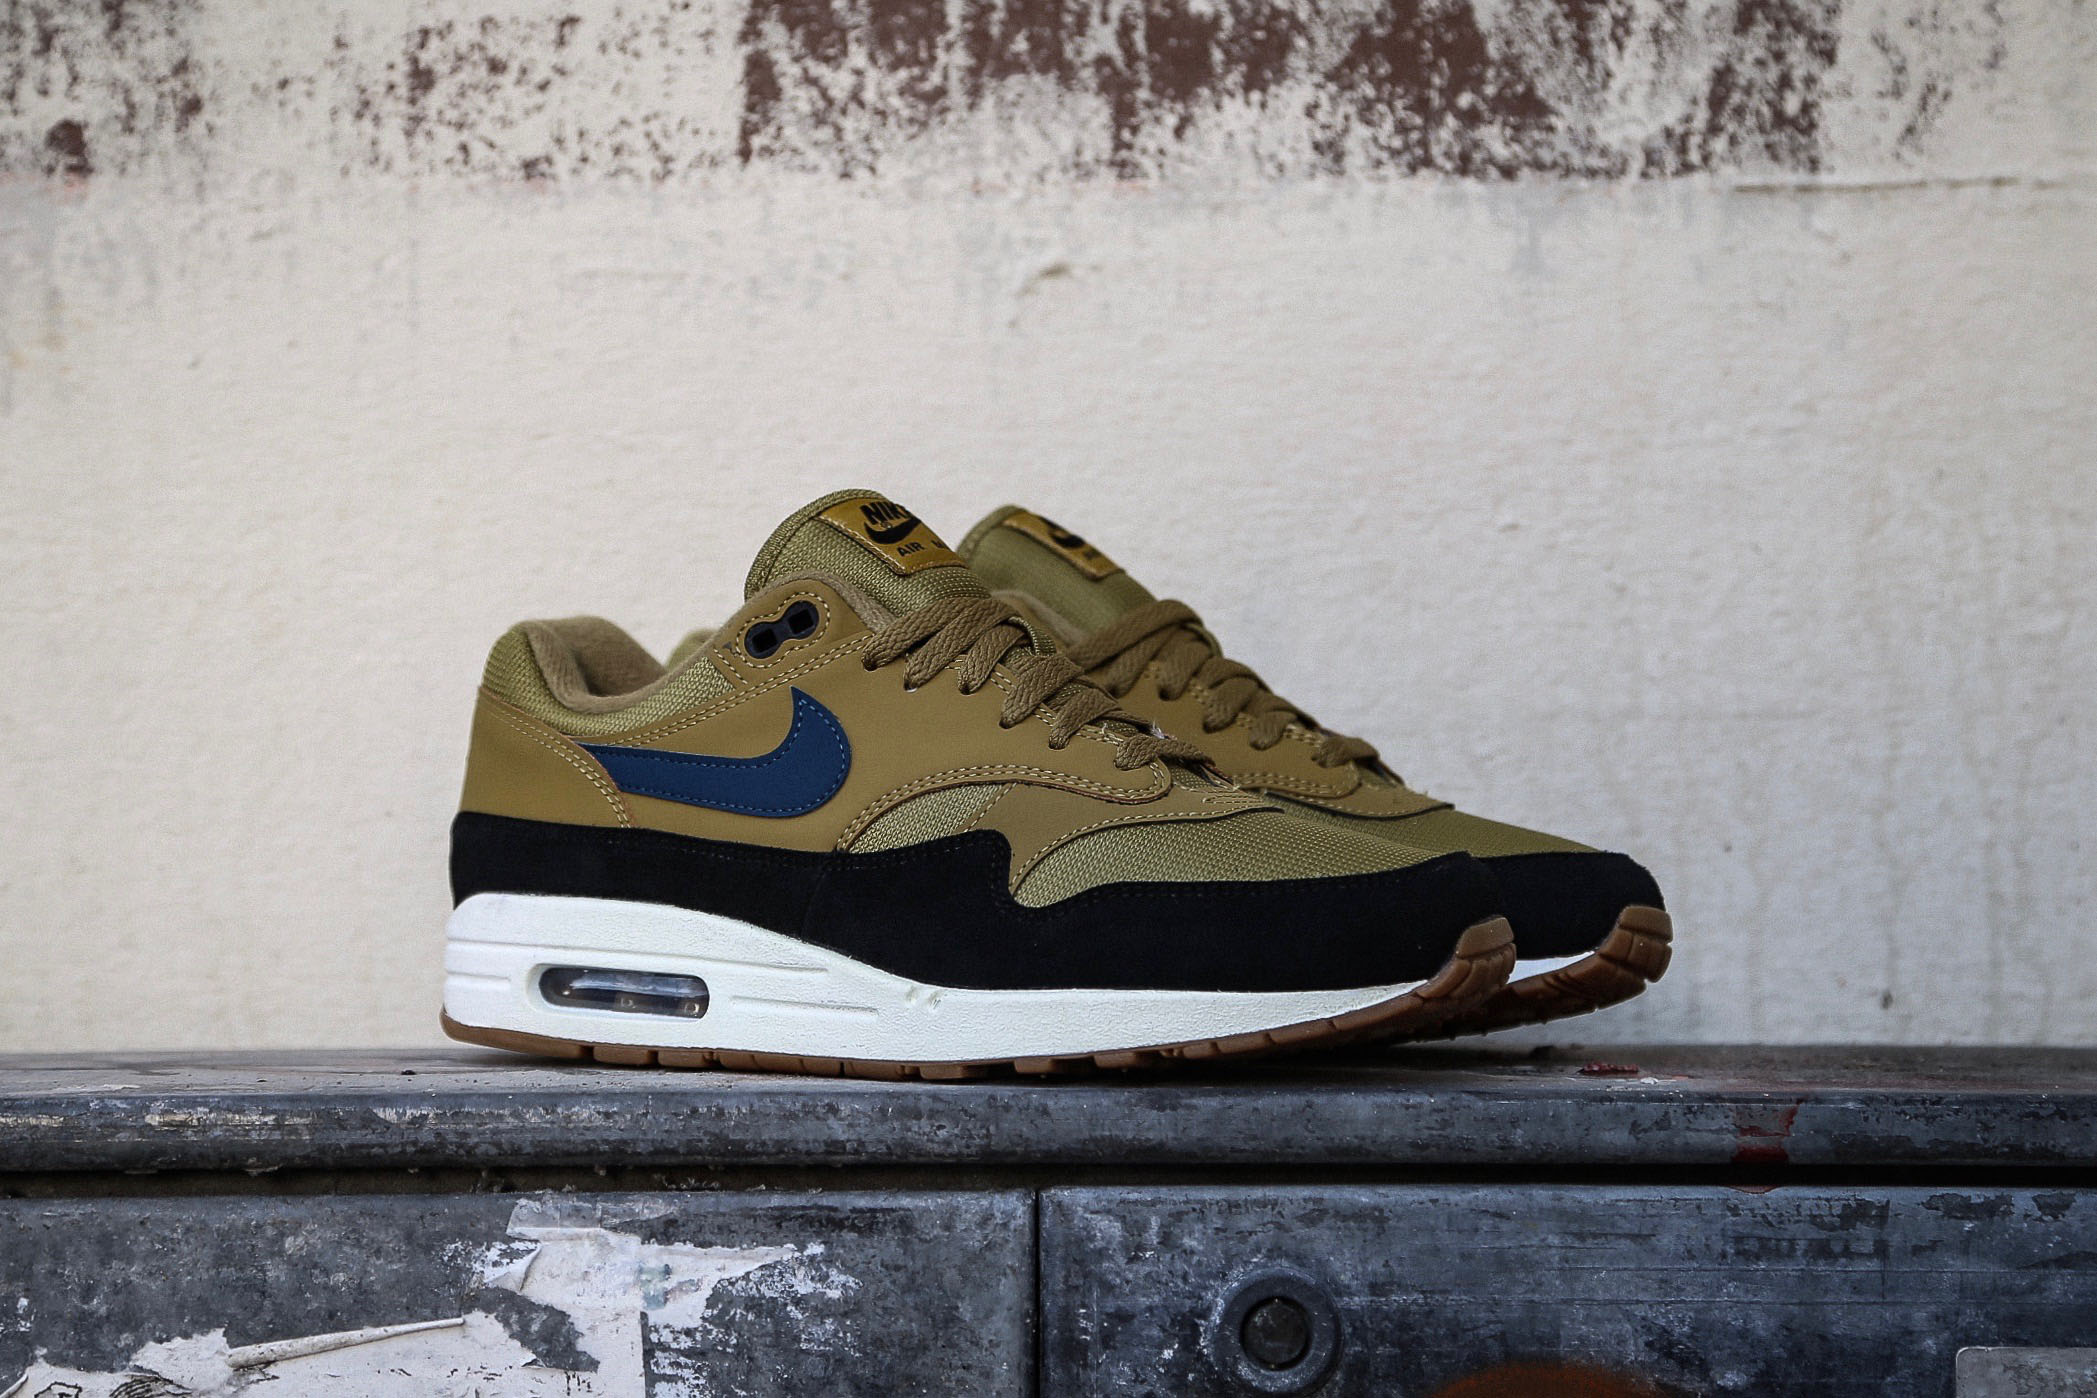 Nike Air Max 1 Golden Moss Blue Force